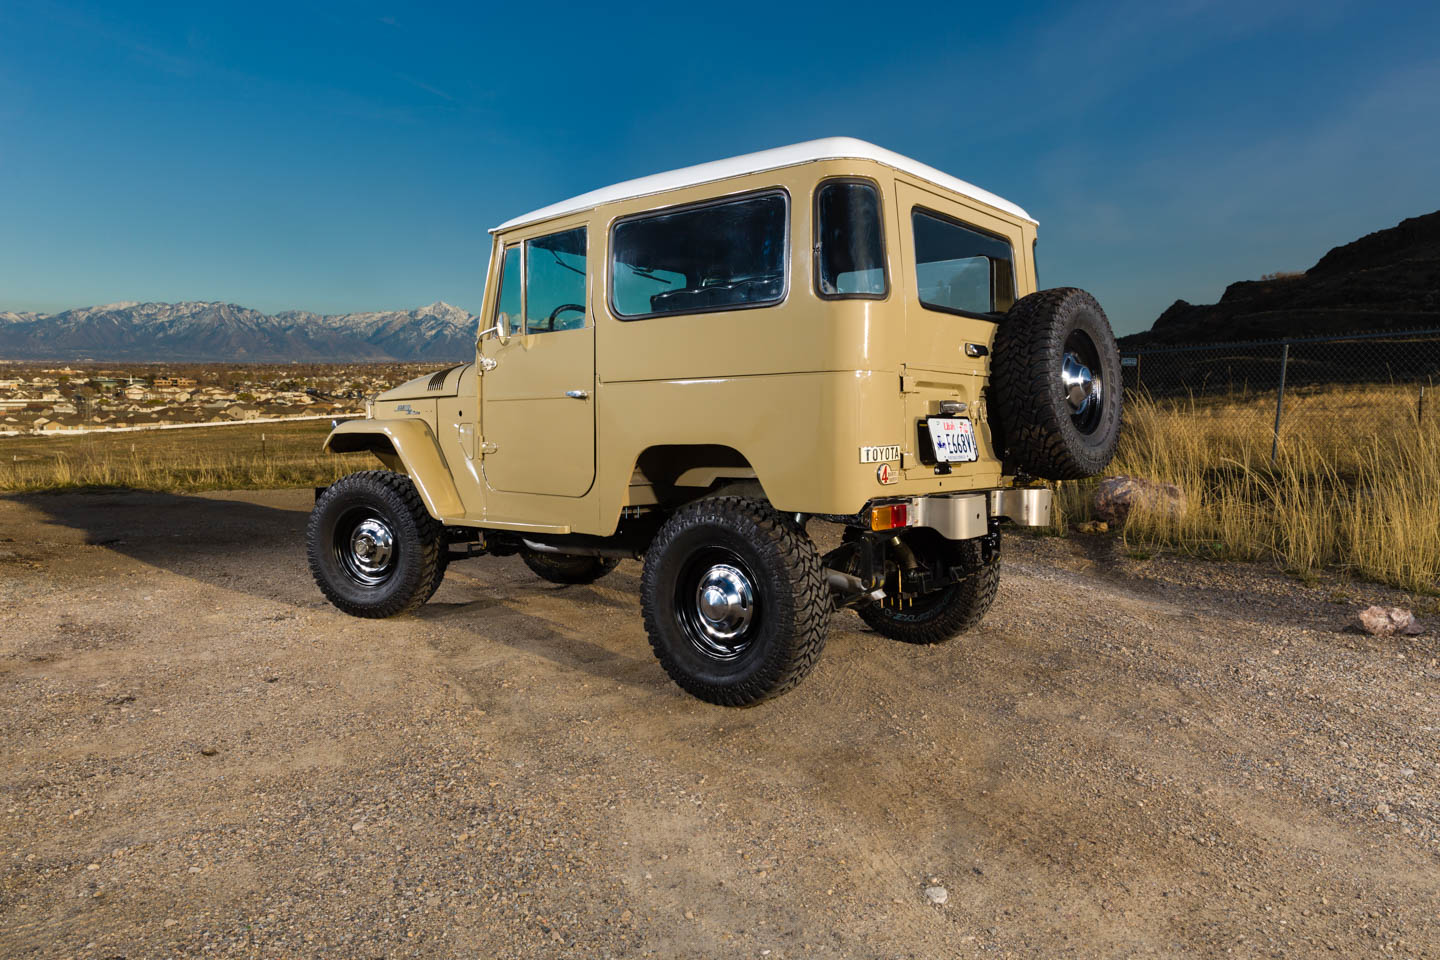 Restored Toyota Land Cruiser in Quicksand paint